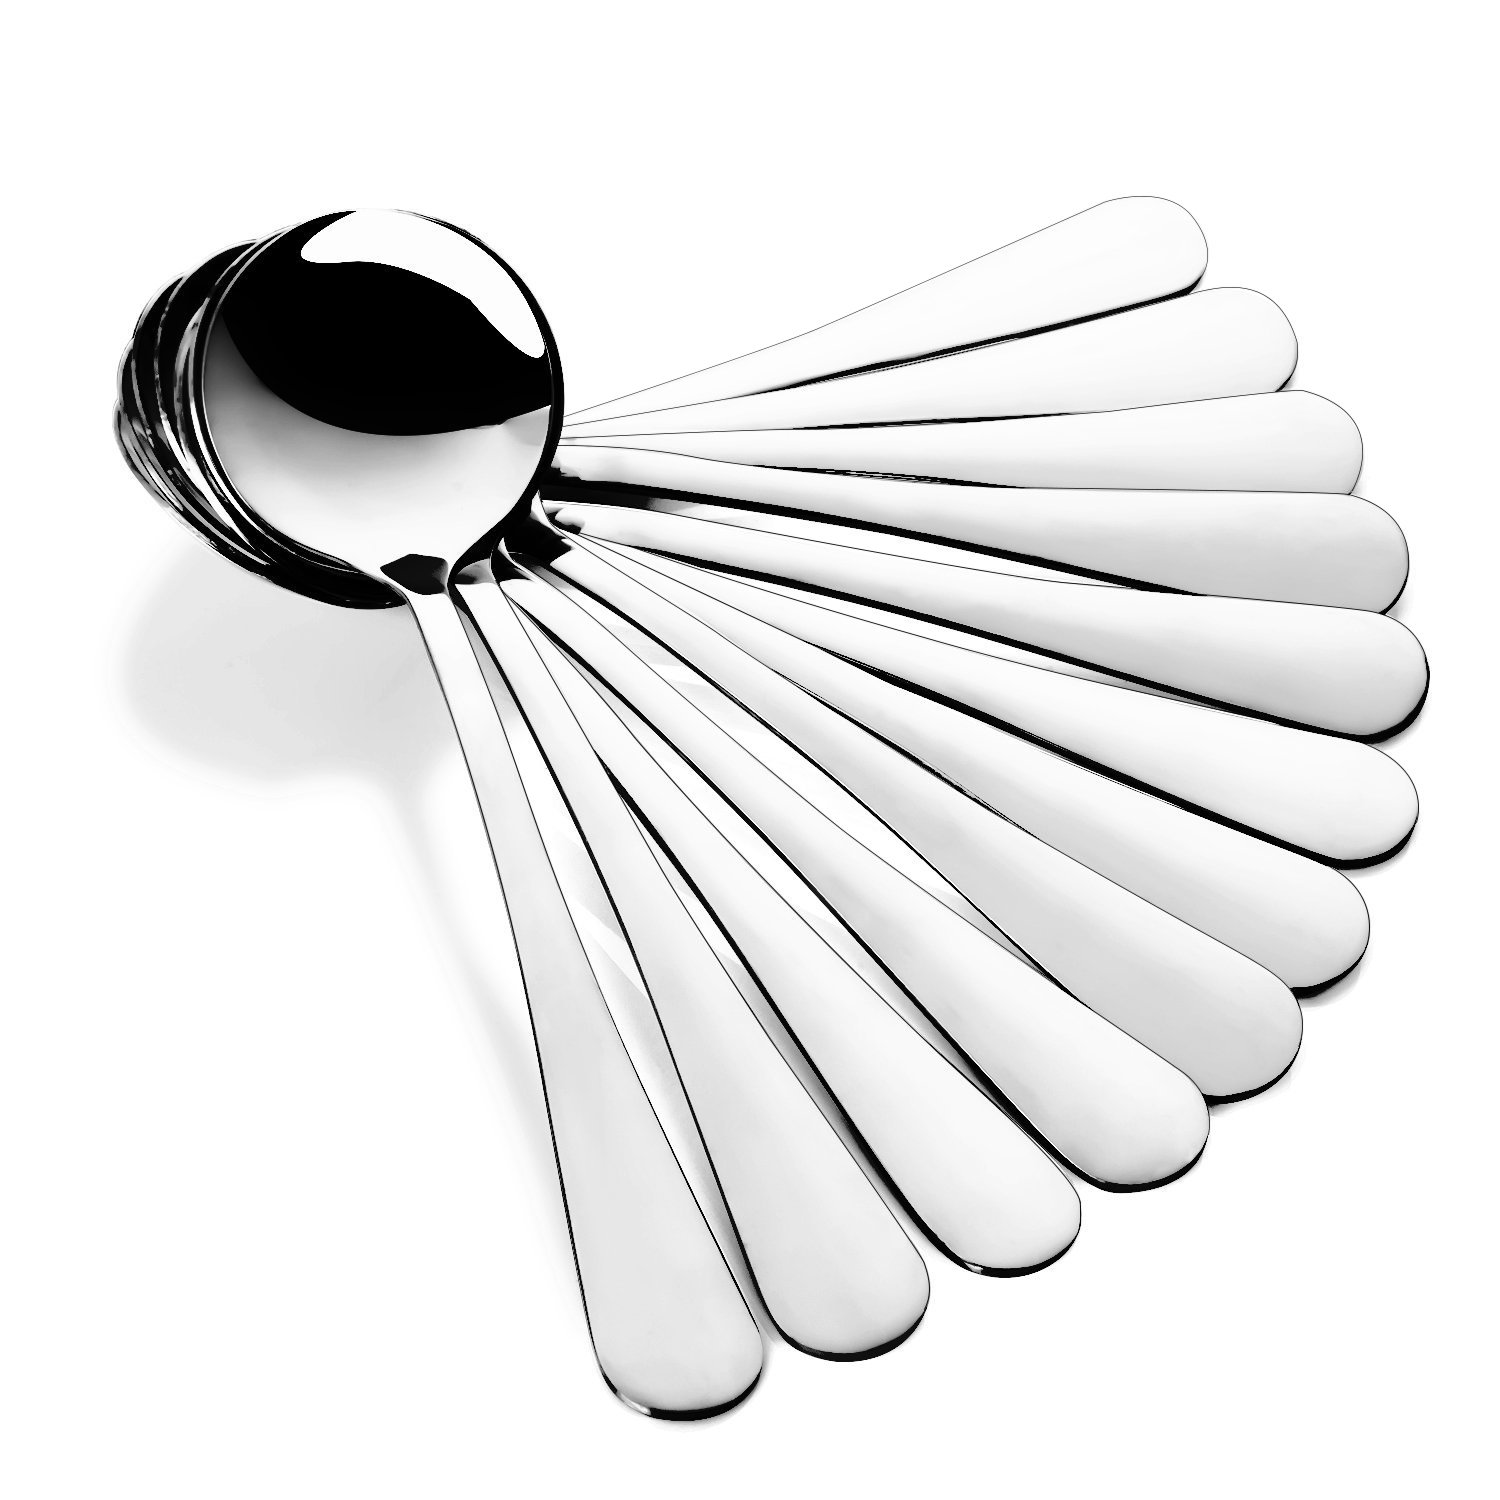 Hiware Soup Spoons, Round Stainless Steel Bouillon Spoons, Set of 12 by Hiware